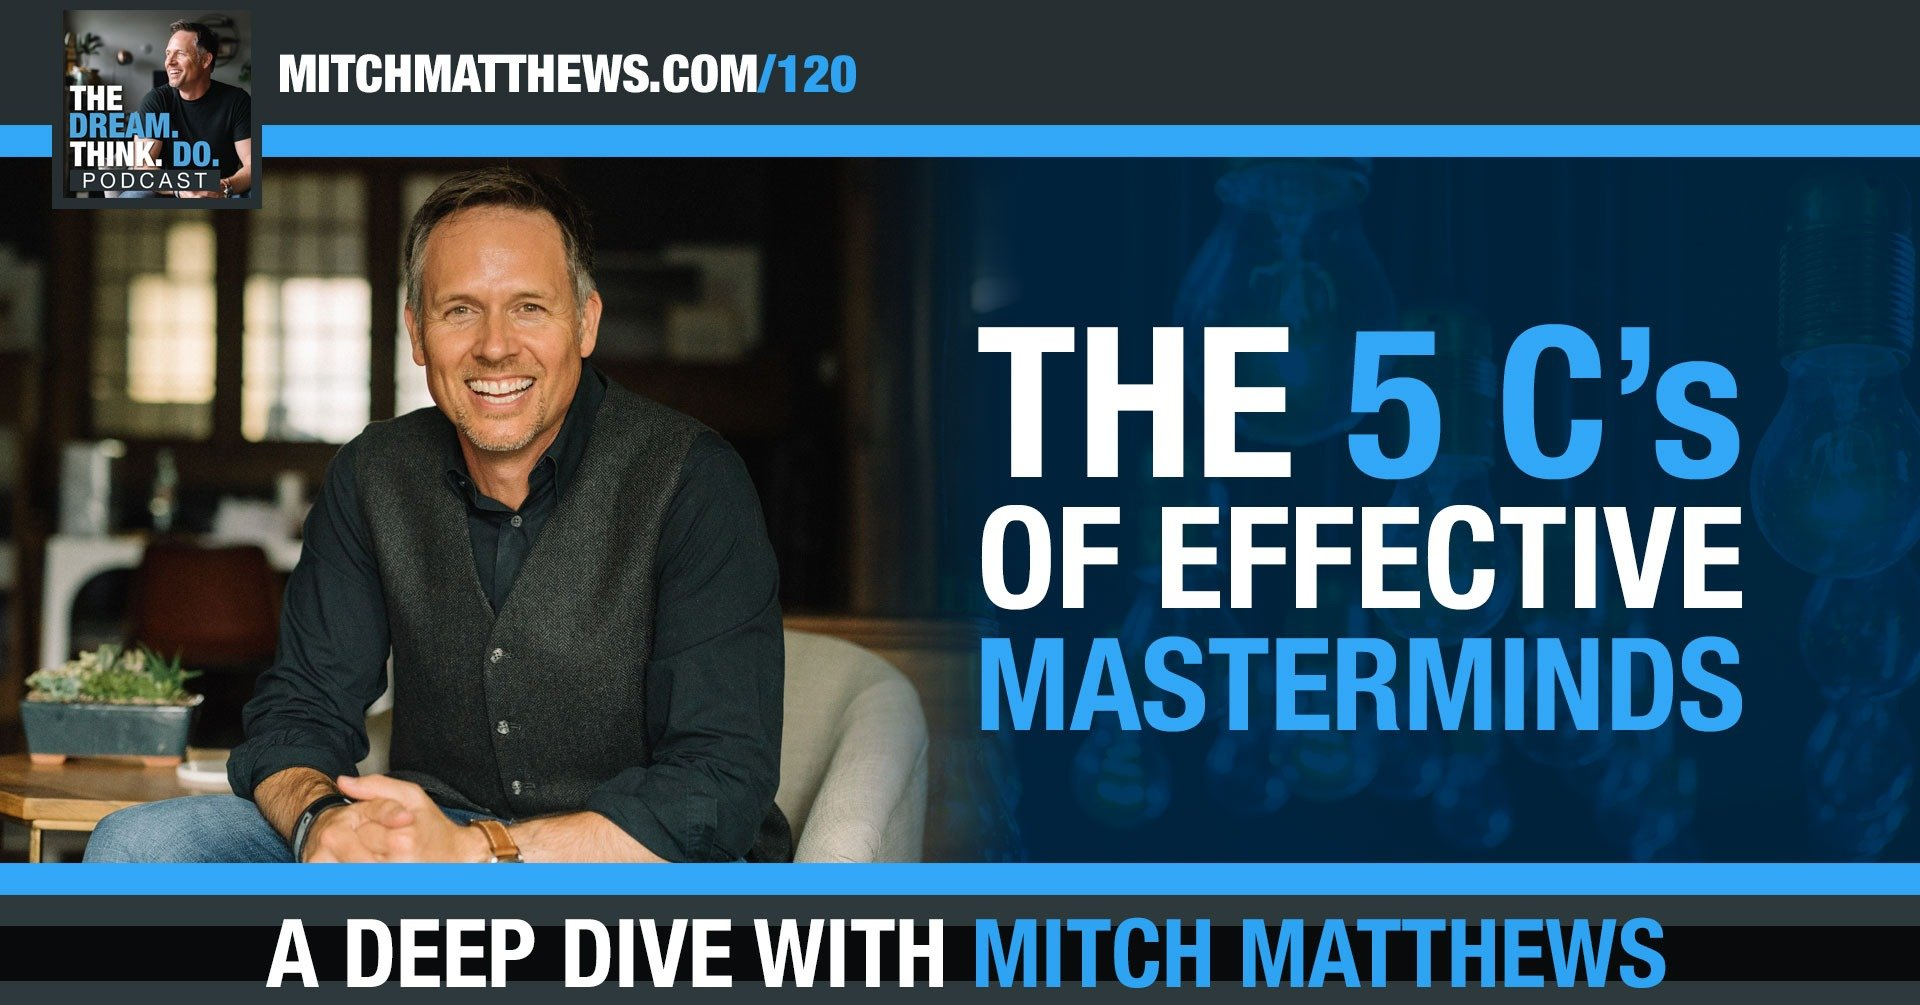 Start a Mastermind Group - The 5 C's of Effective Masterminds